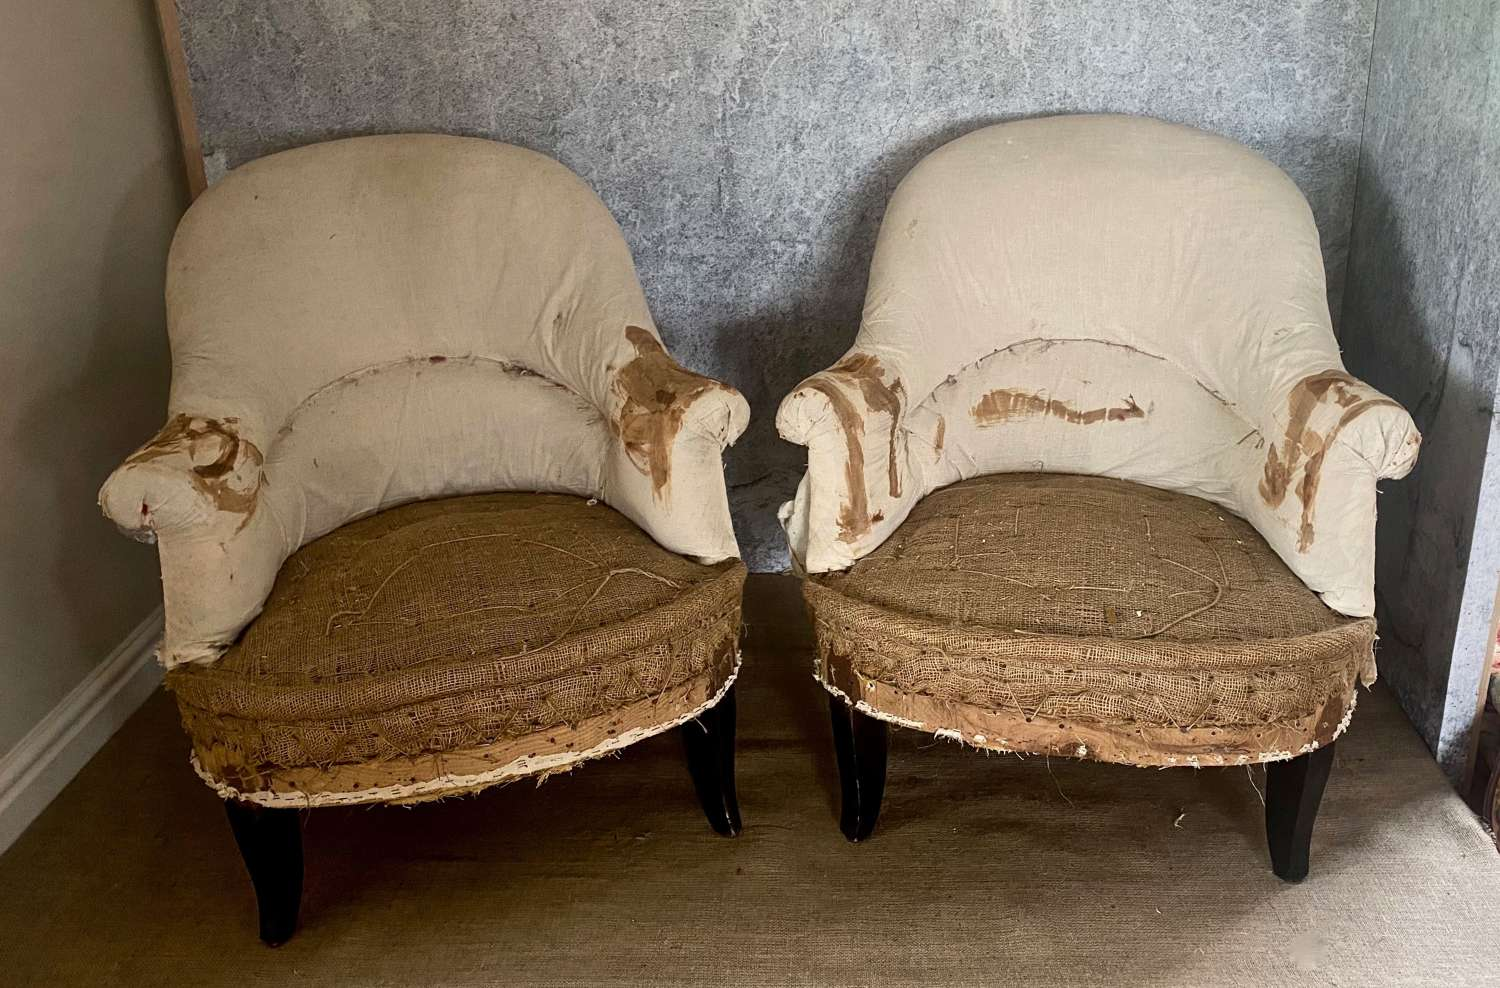 Pair of small deconstructed French armchairs in calico and hessian